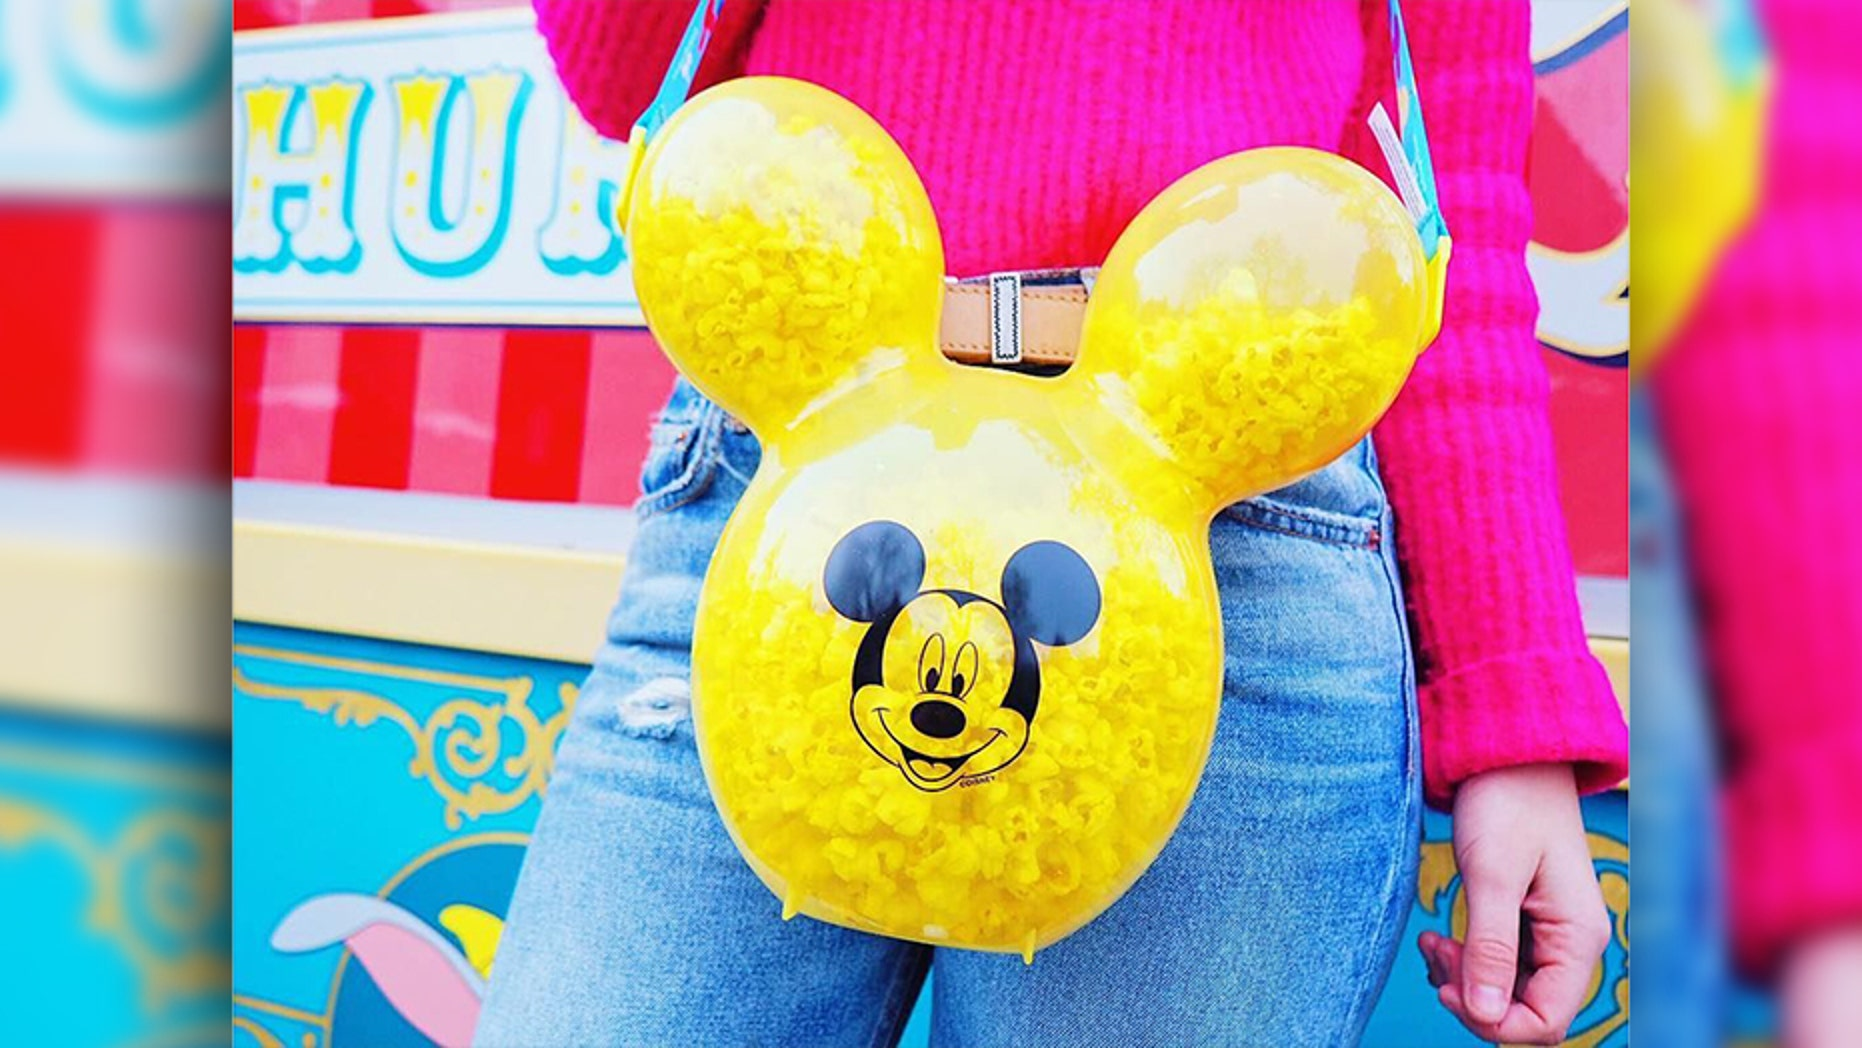 The latest craze at Disneyland isn't a flavored churro or seasonal treat, but a playful accessory intended to hold the timeless salty snack.